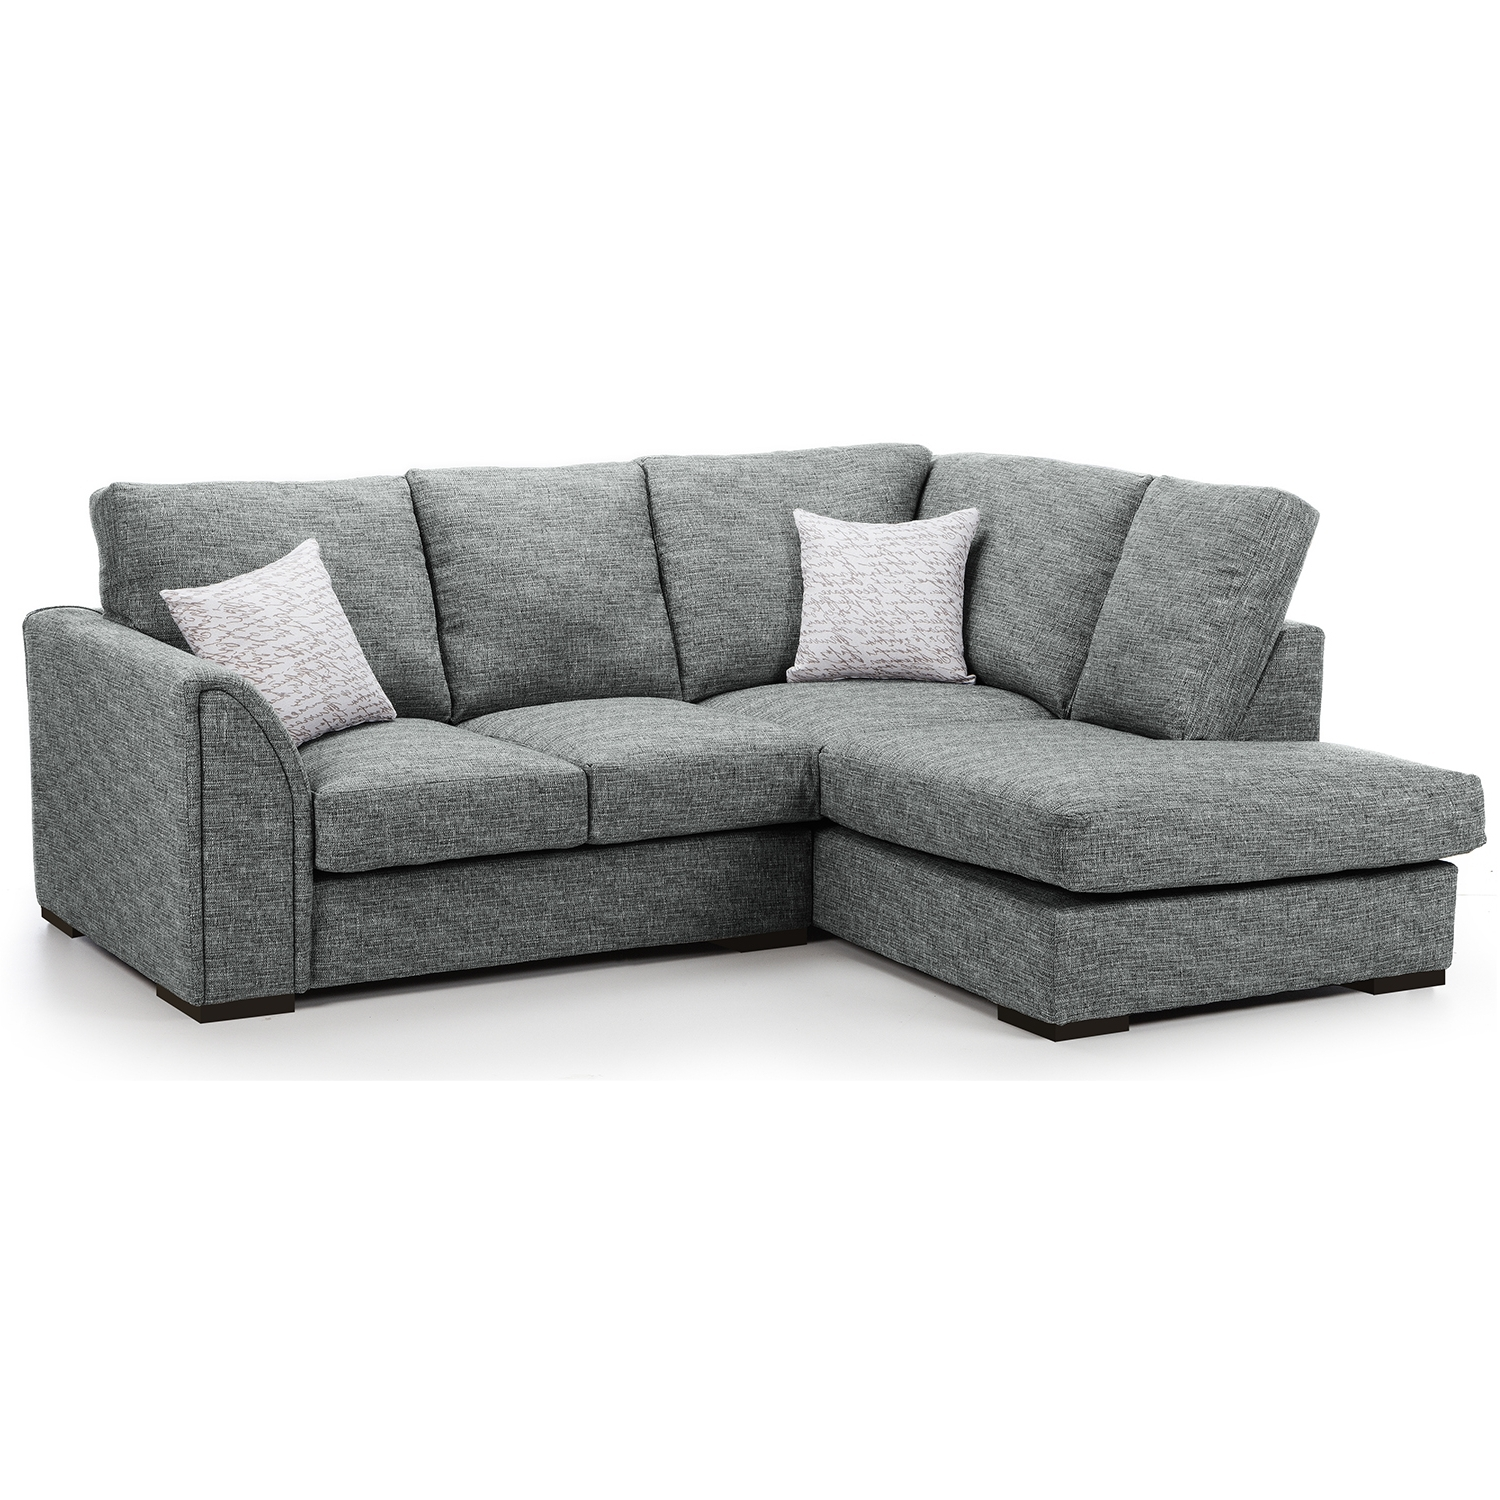 Latest Sofa : Trendy Fabric Corner Sofa Modern Bed For Living Room With Regarding Fabric Corner Sofas (View 11 of 20)